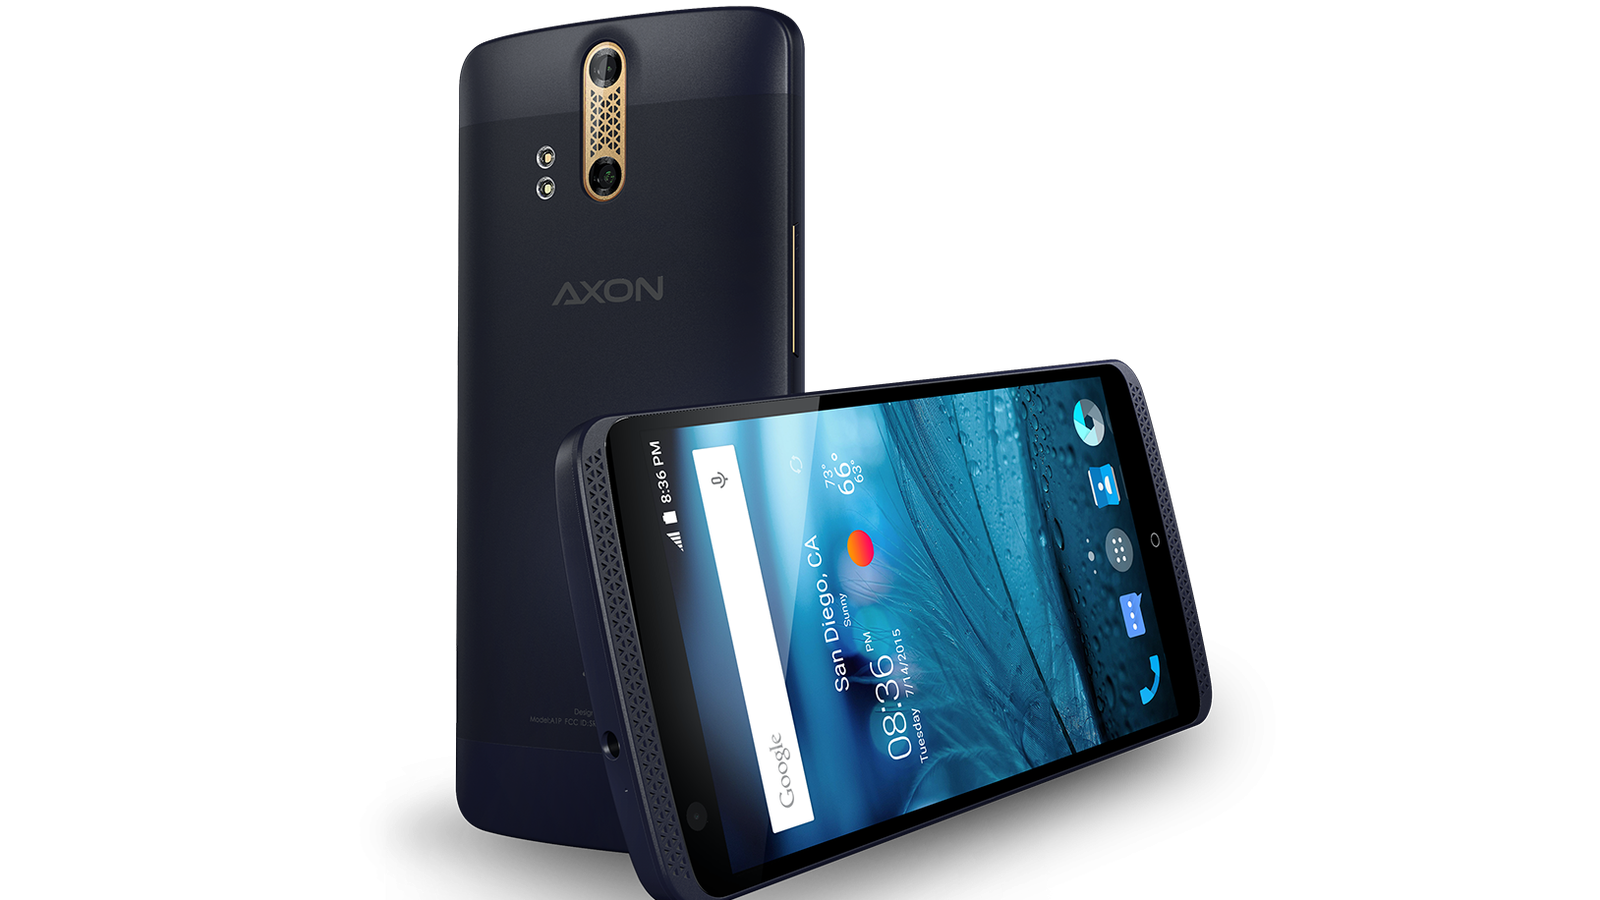 ZTE's Axon is a 5.5-inch unlocked phablet for the US